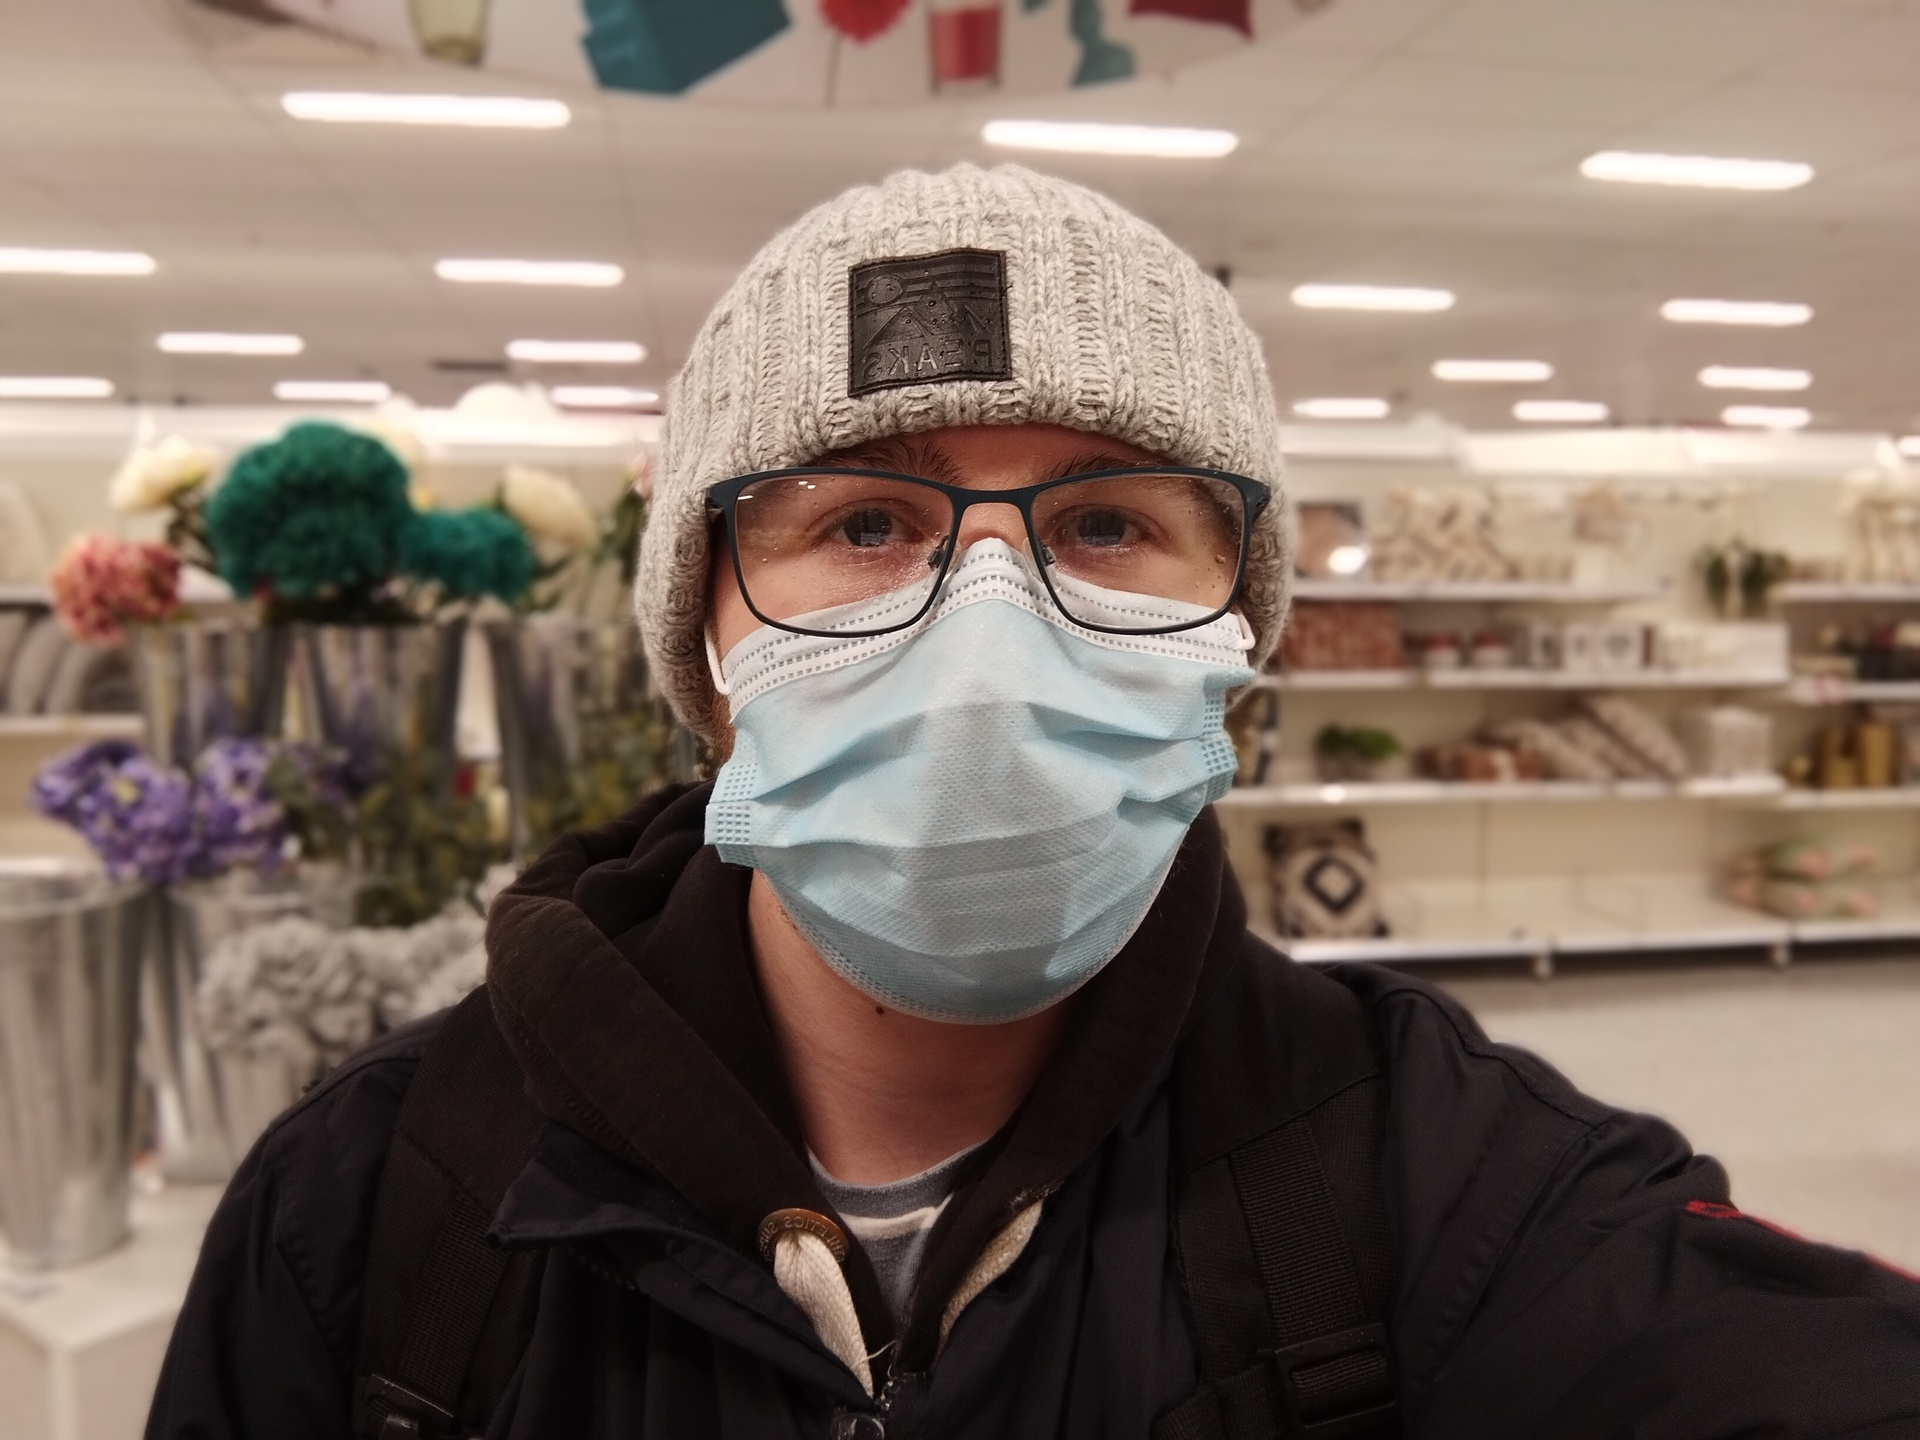 OnePlus Nord N100 portriat selfie photo sample in a shop